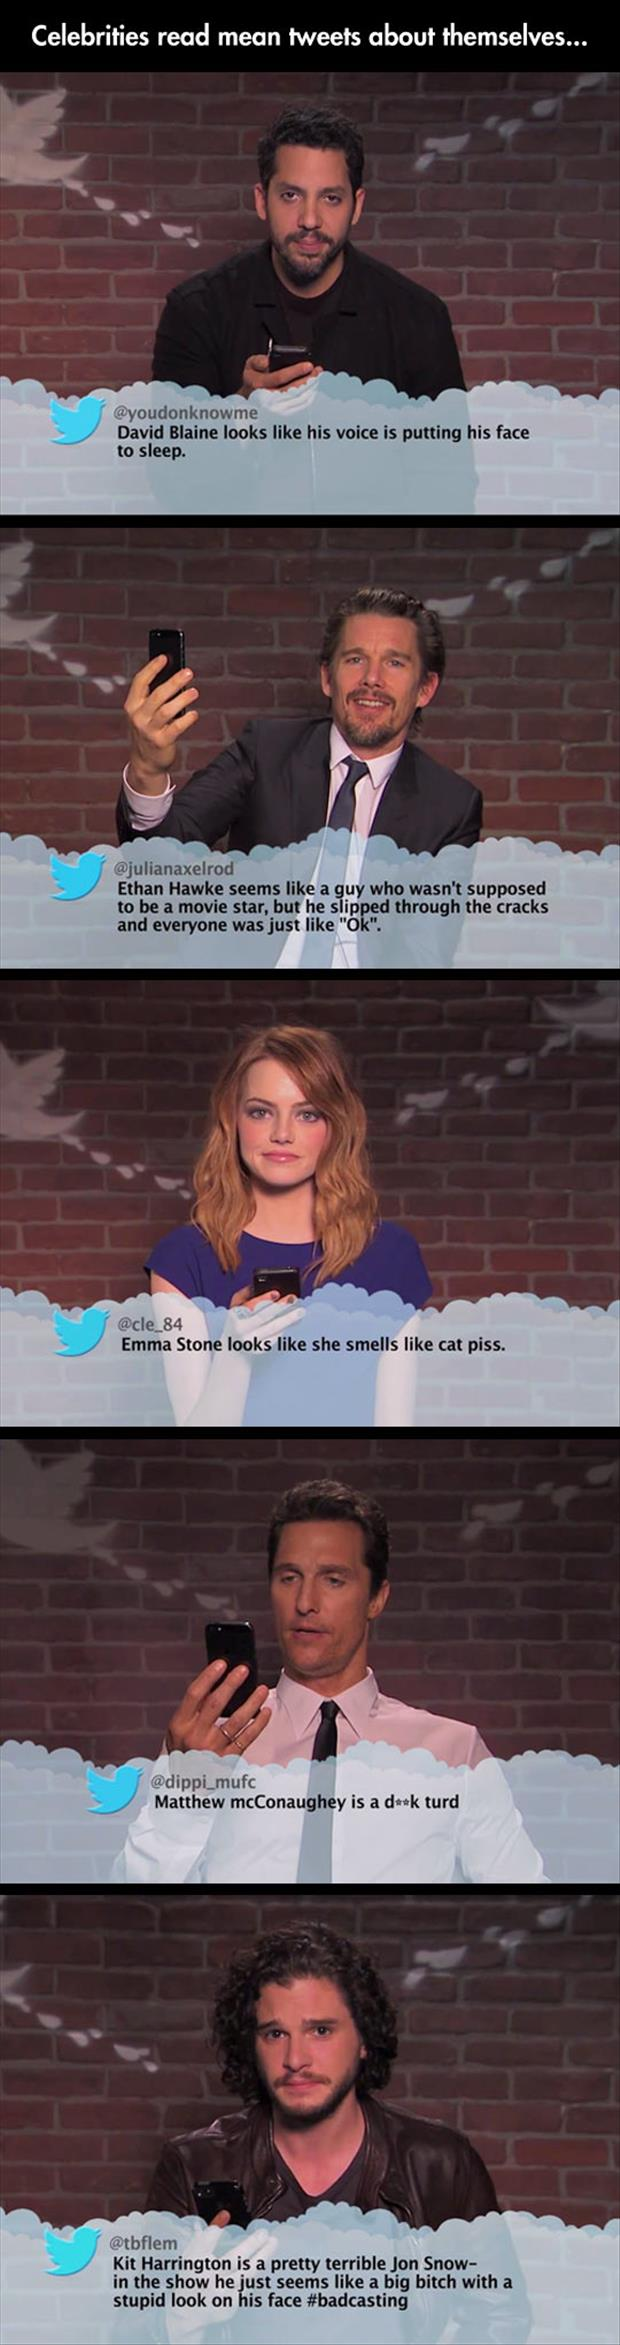 funny celebrities read tweets about themselves